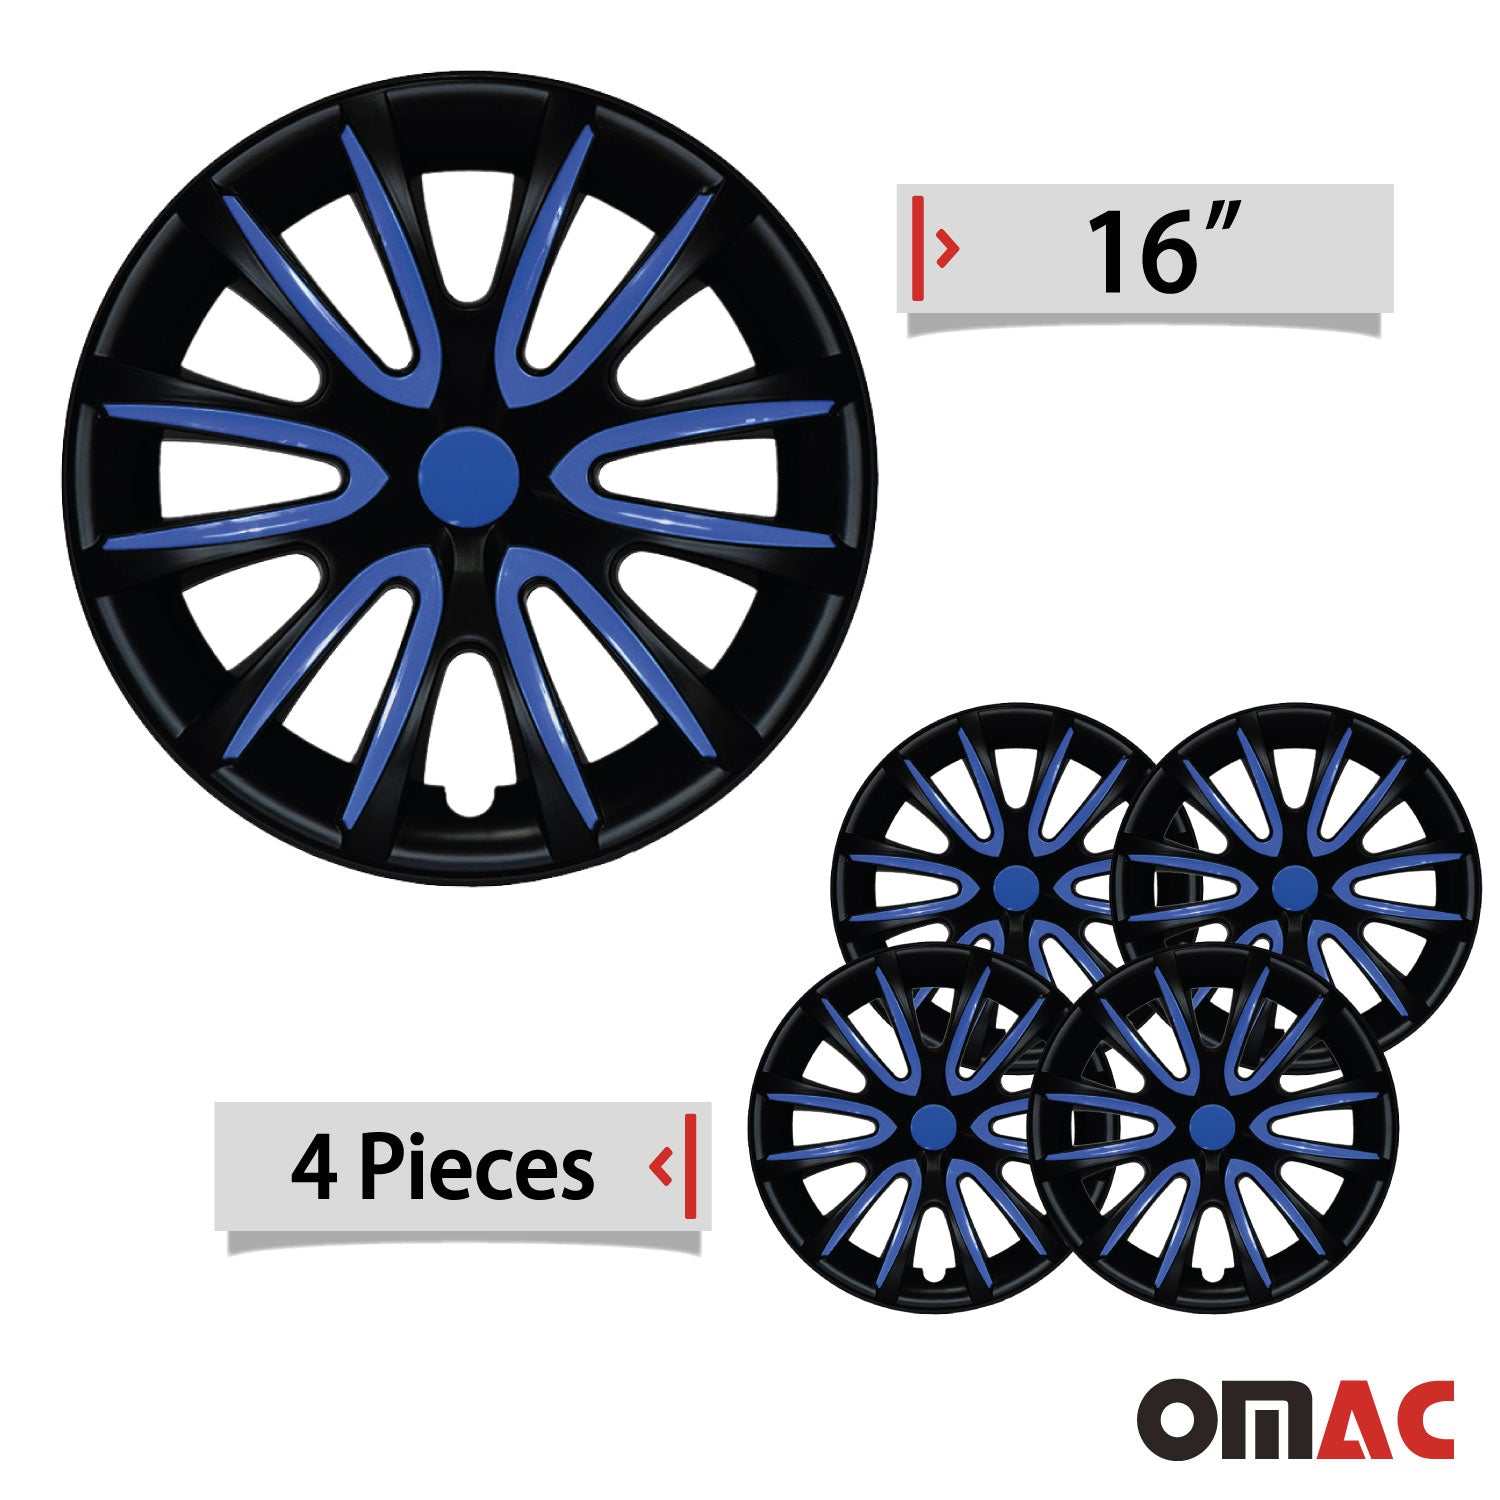 16 Inch Hubcaps Wheel Rim Cover Matt Black & Dark Blue for Mitsubishi Outlander